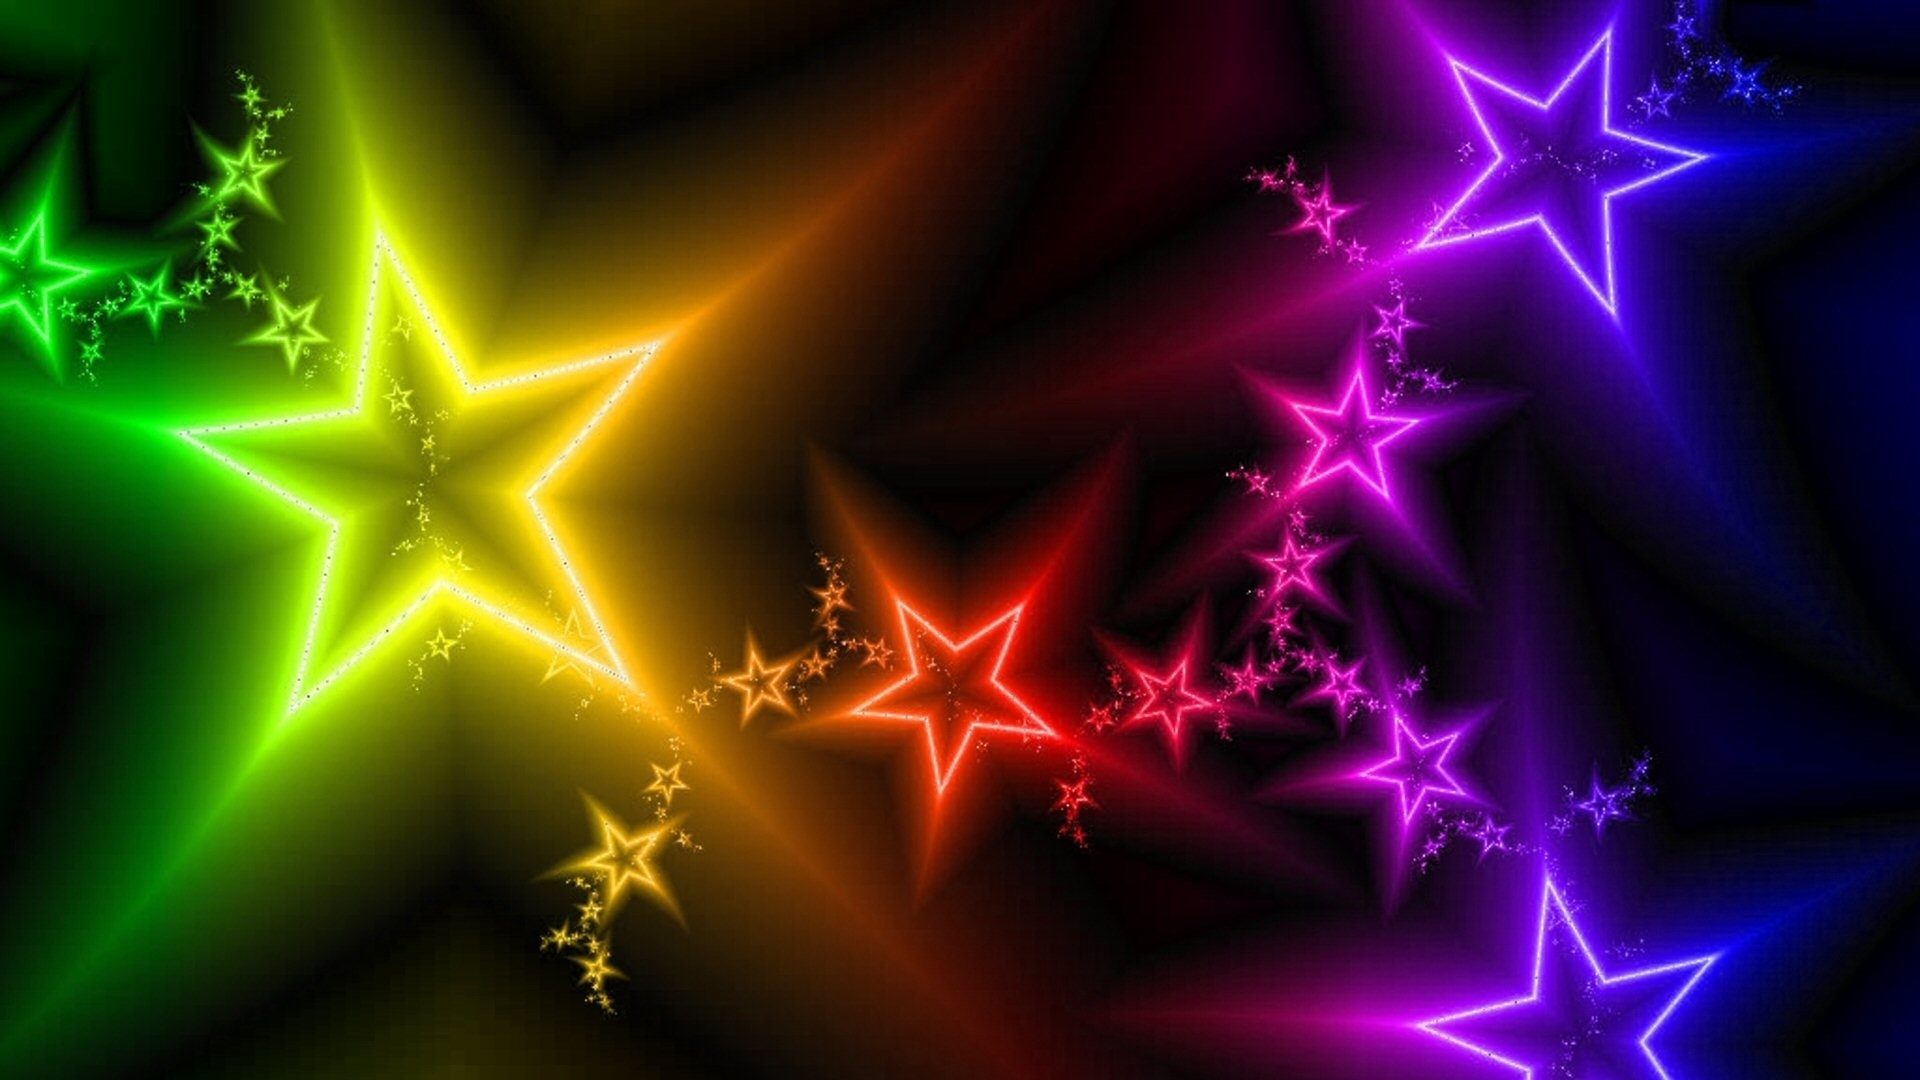 Free Download Wallpaper Colorful Stars Wallpapers Hd